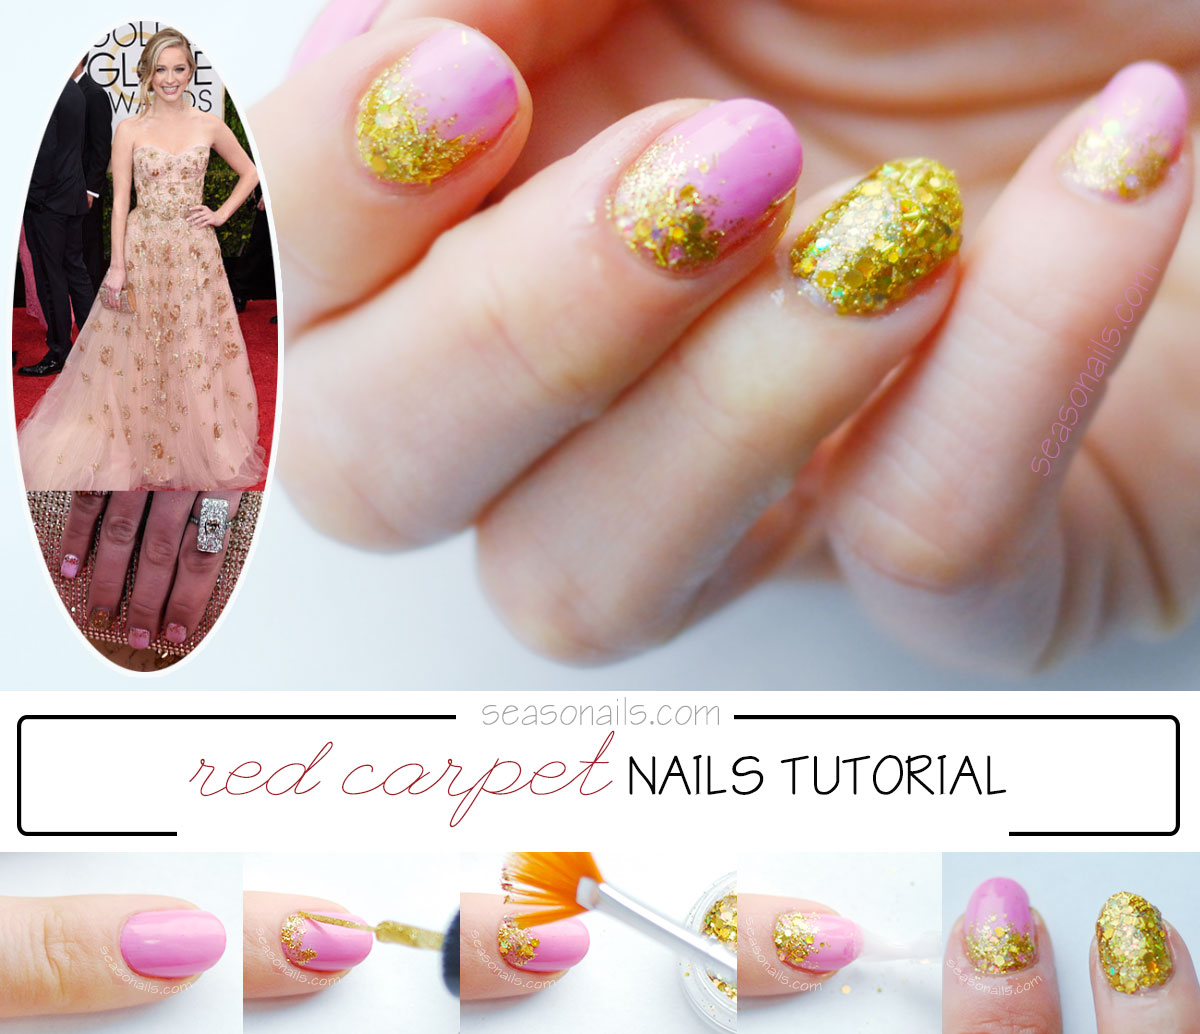 red carpet nails tutorial